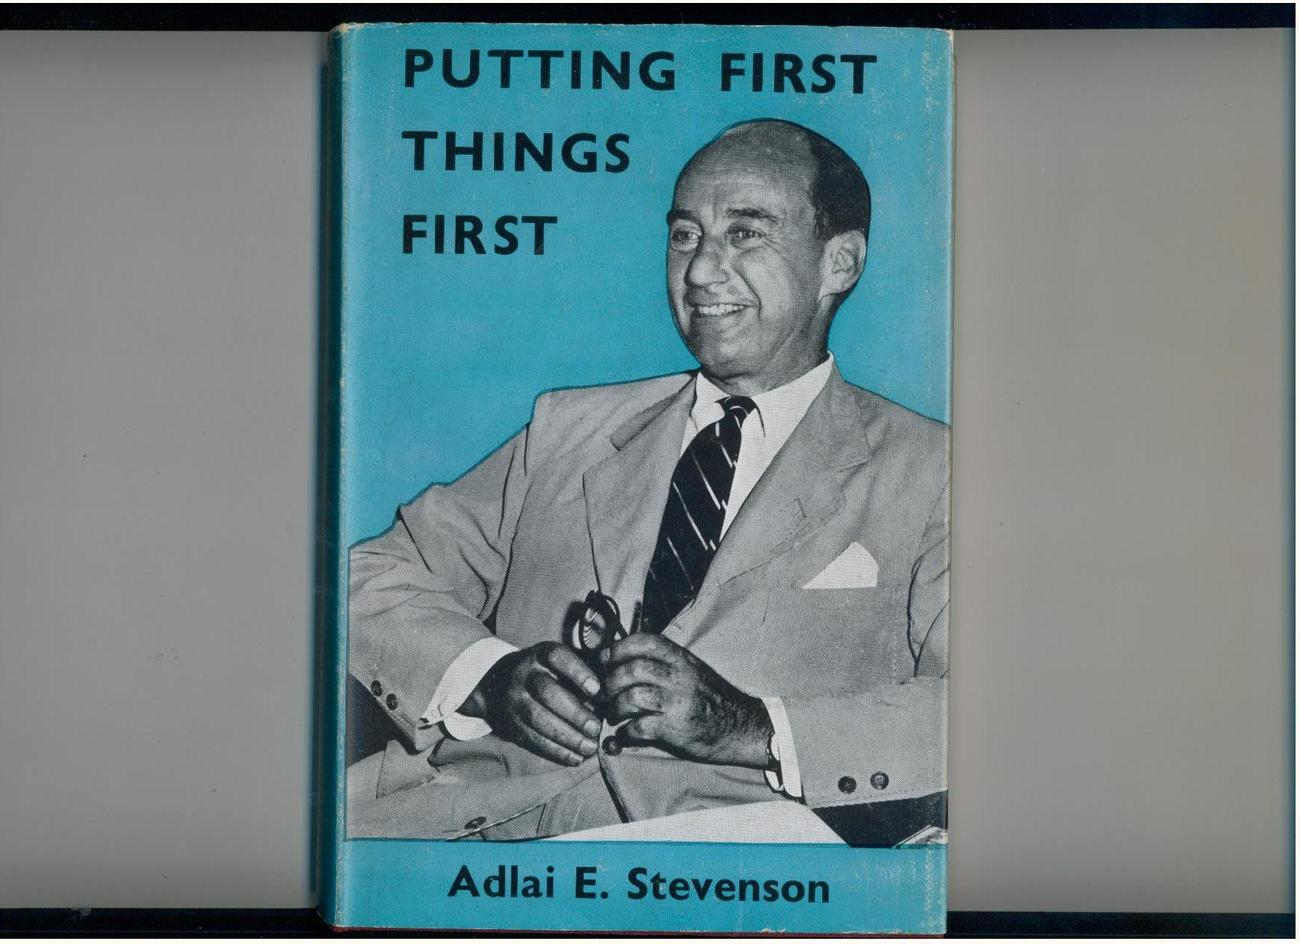 Adlai Stevenson - PUTTING FIRST THINGS FIRST - 1960, scarce British 1st